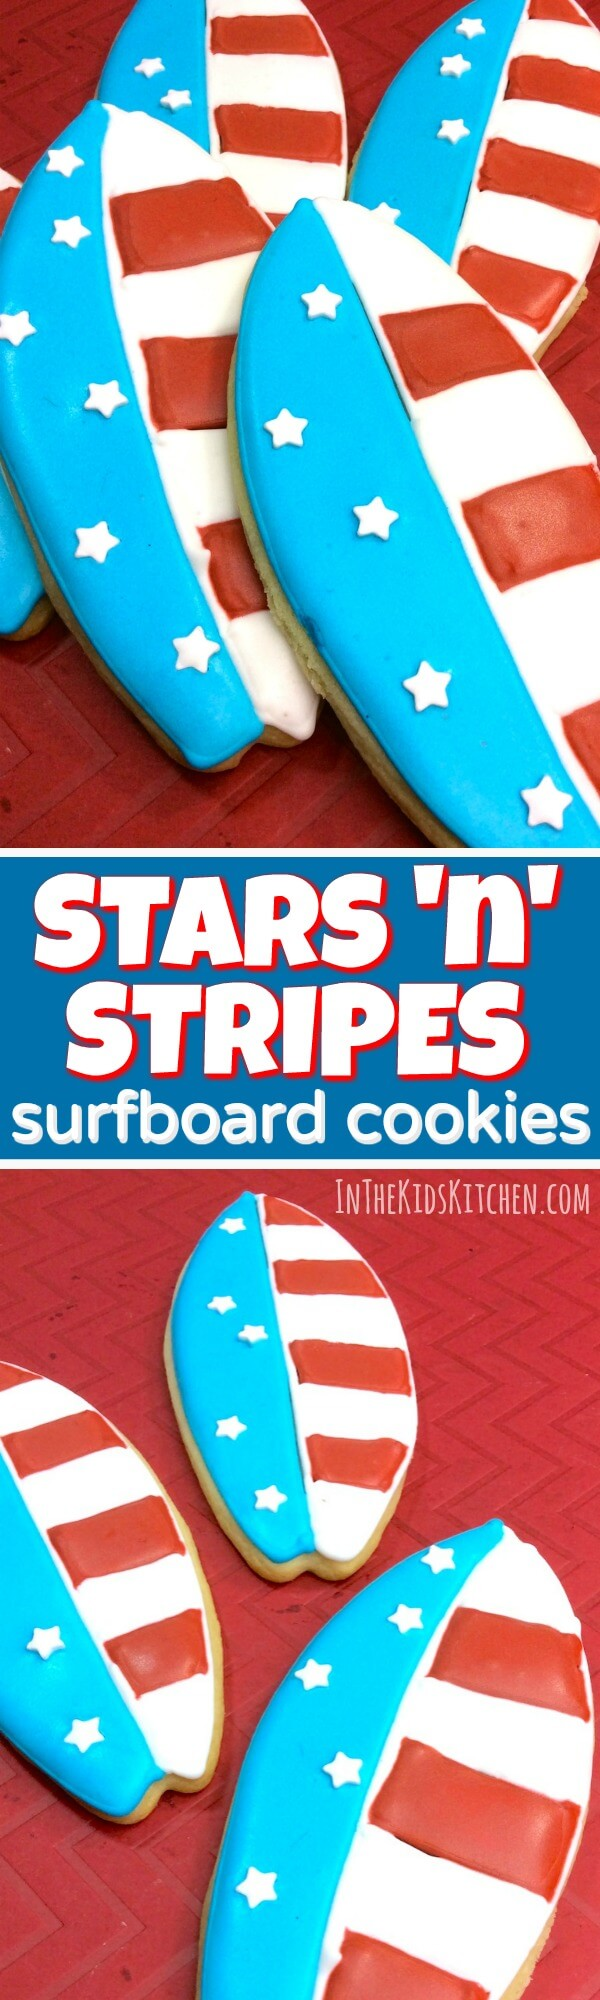 These patriotic surfboard sugar cookies are unique and super-cute treat for your Memorial Day or 4th of July party. Perfect for a summer pool party too!